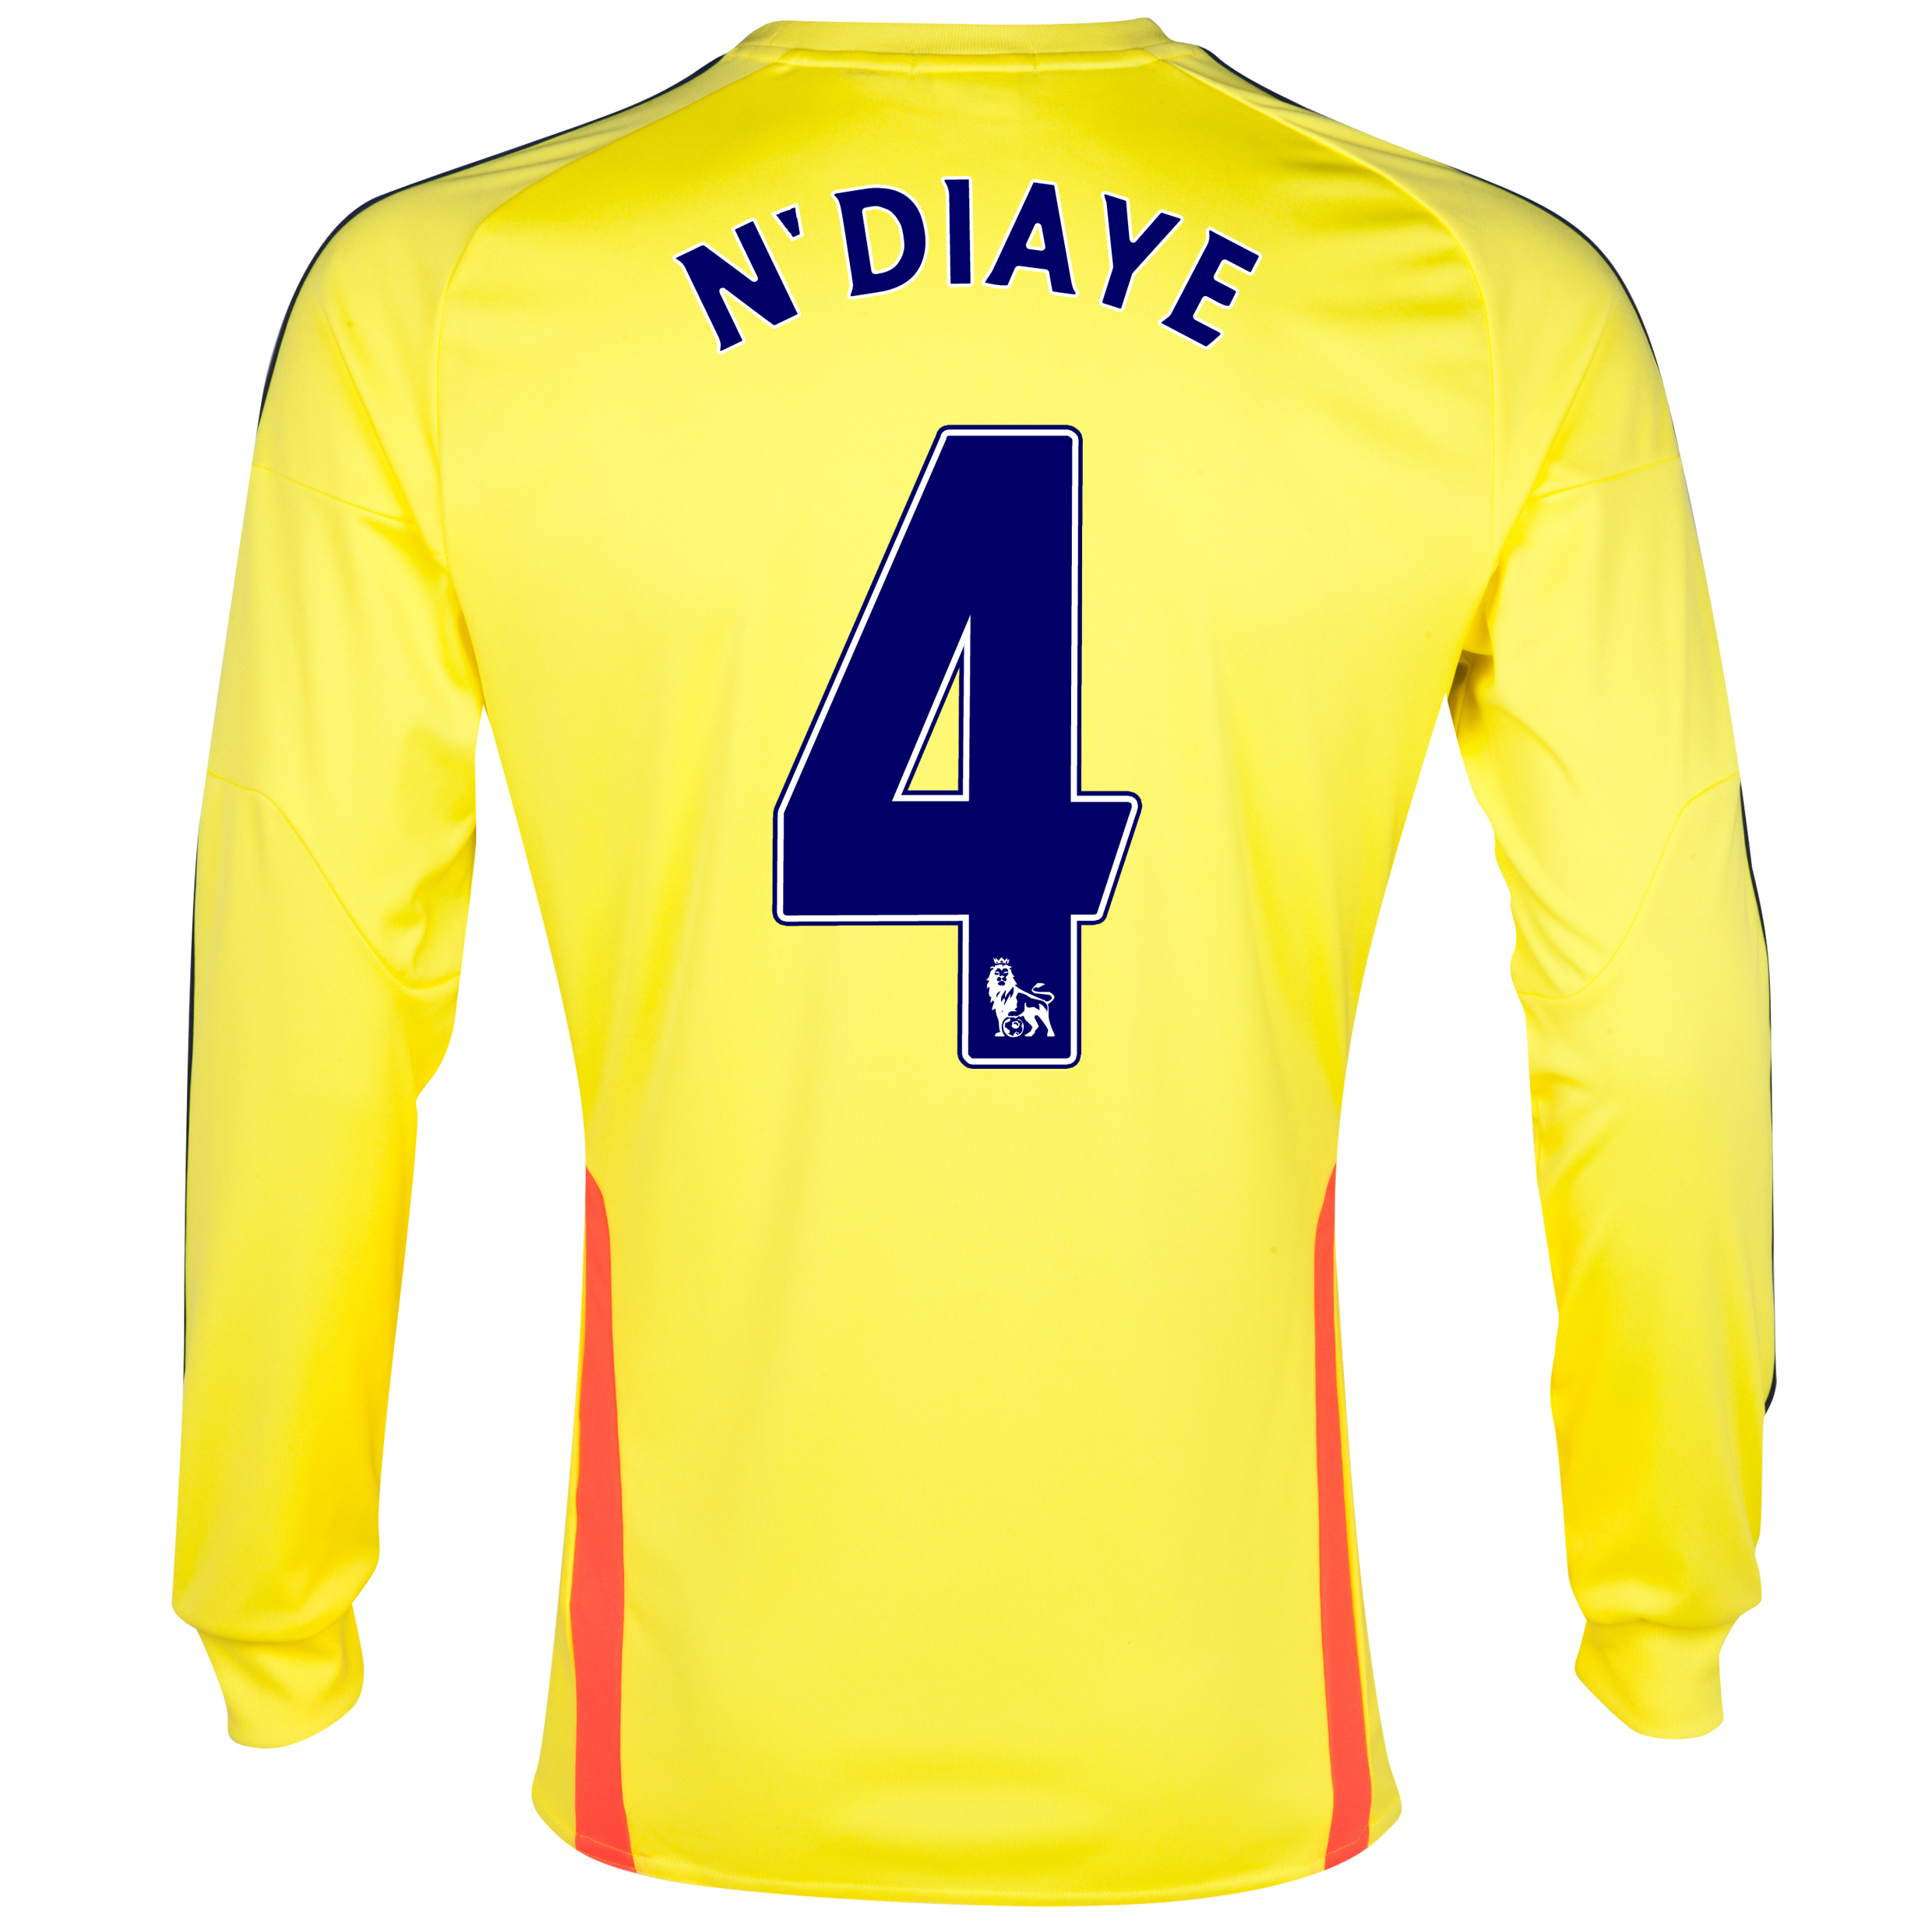 Sunderland Away Shirt 2013/14 - Long Sleeved with N'Diaye 4 printing